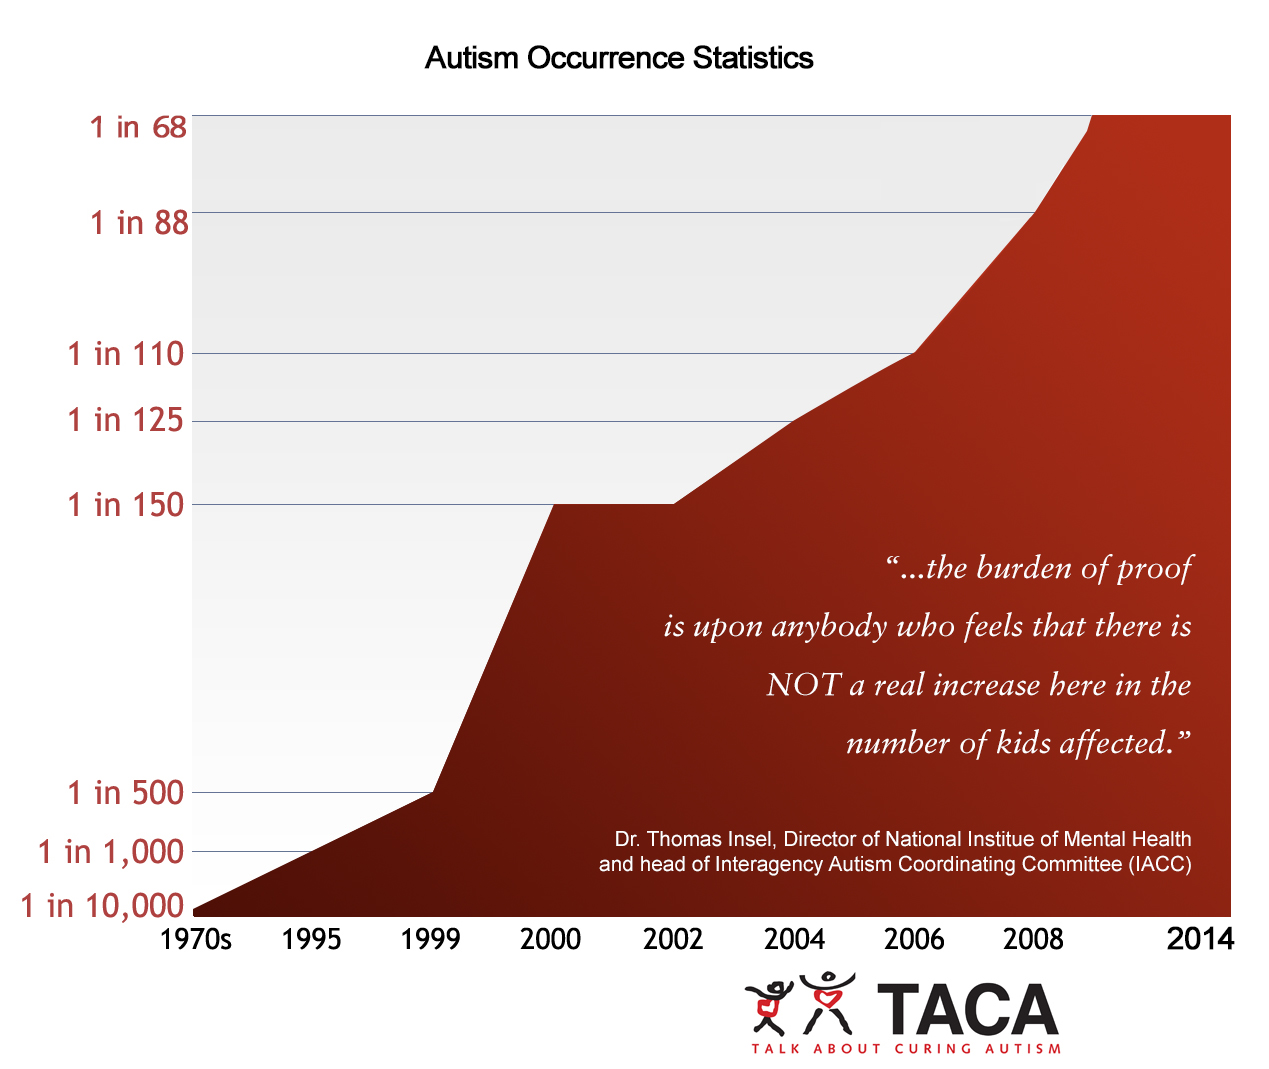 Autism rates from the 70s to the present